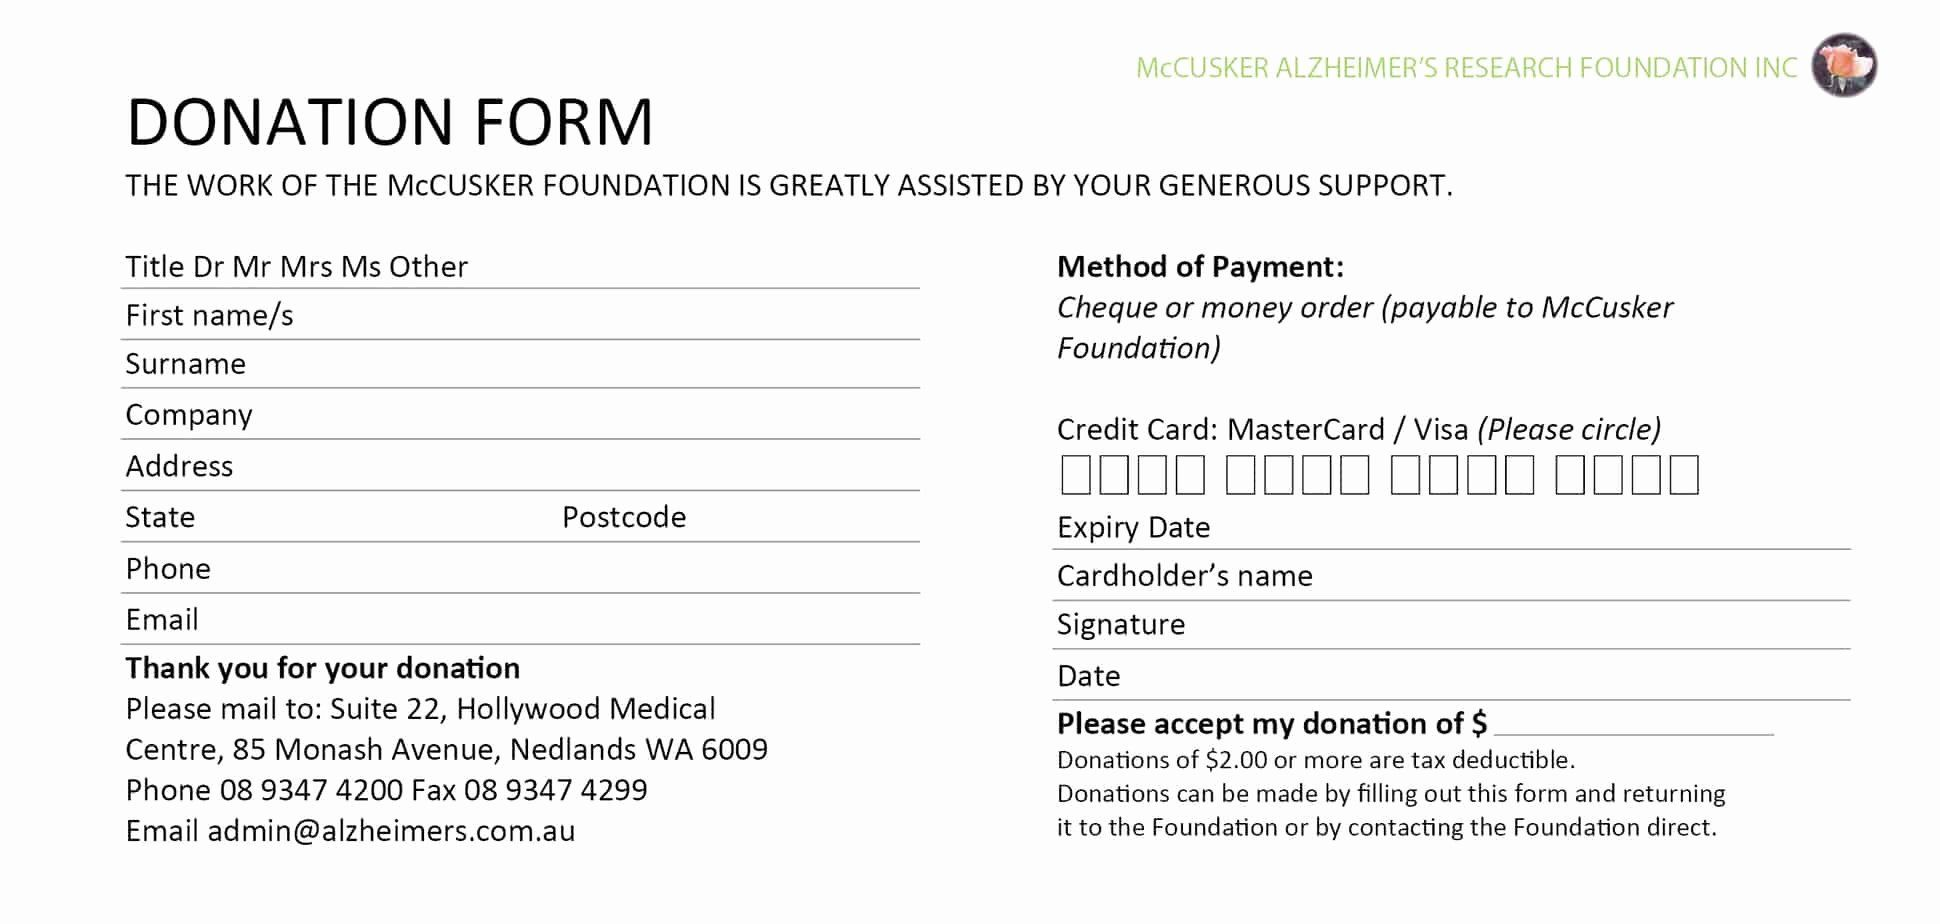 Donation Form Template Pdf New 6 Donation Form Templates Excel Pdf Formats Note Card Template Card Templates Free Donation Form